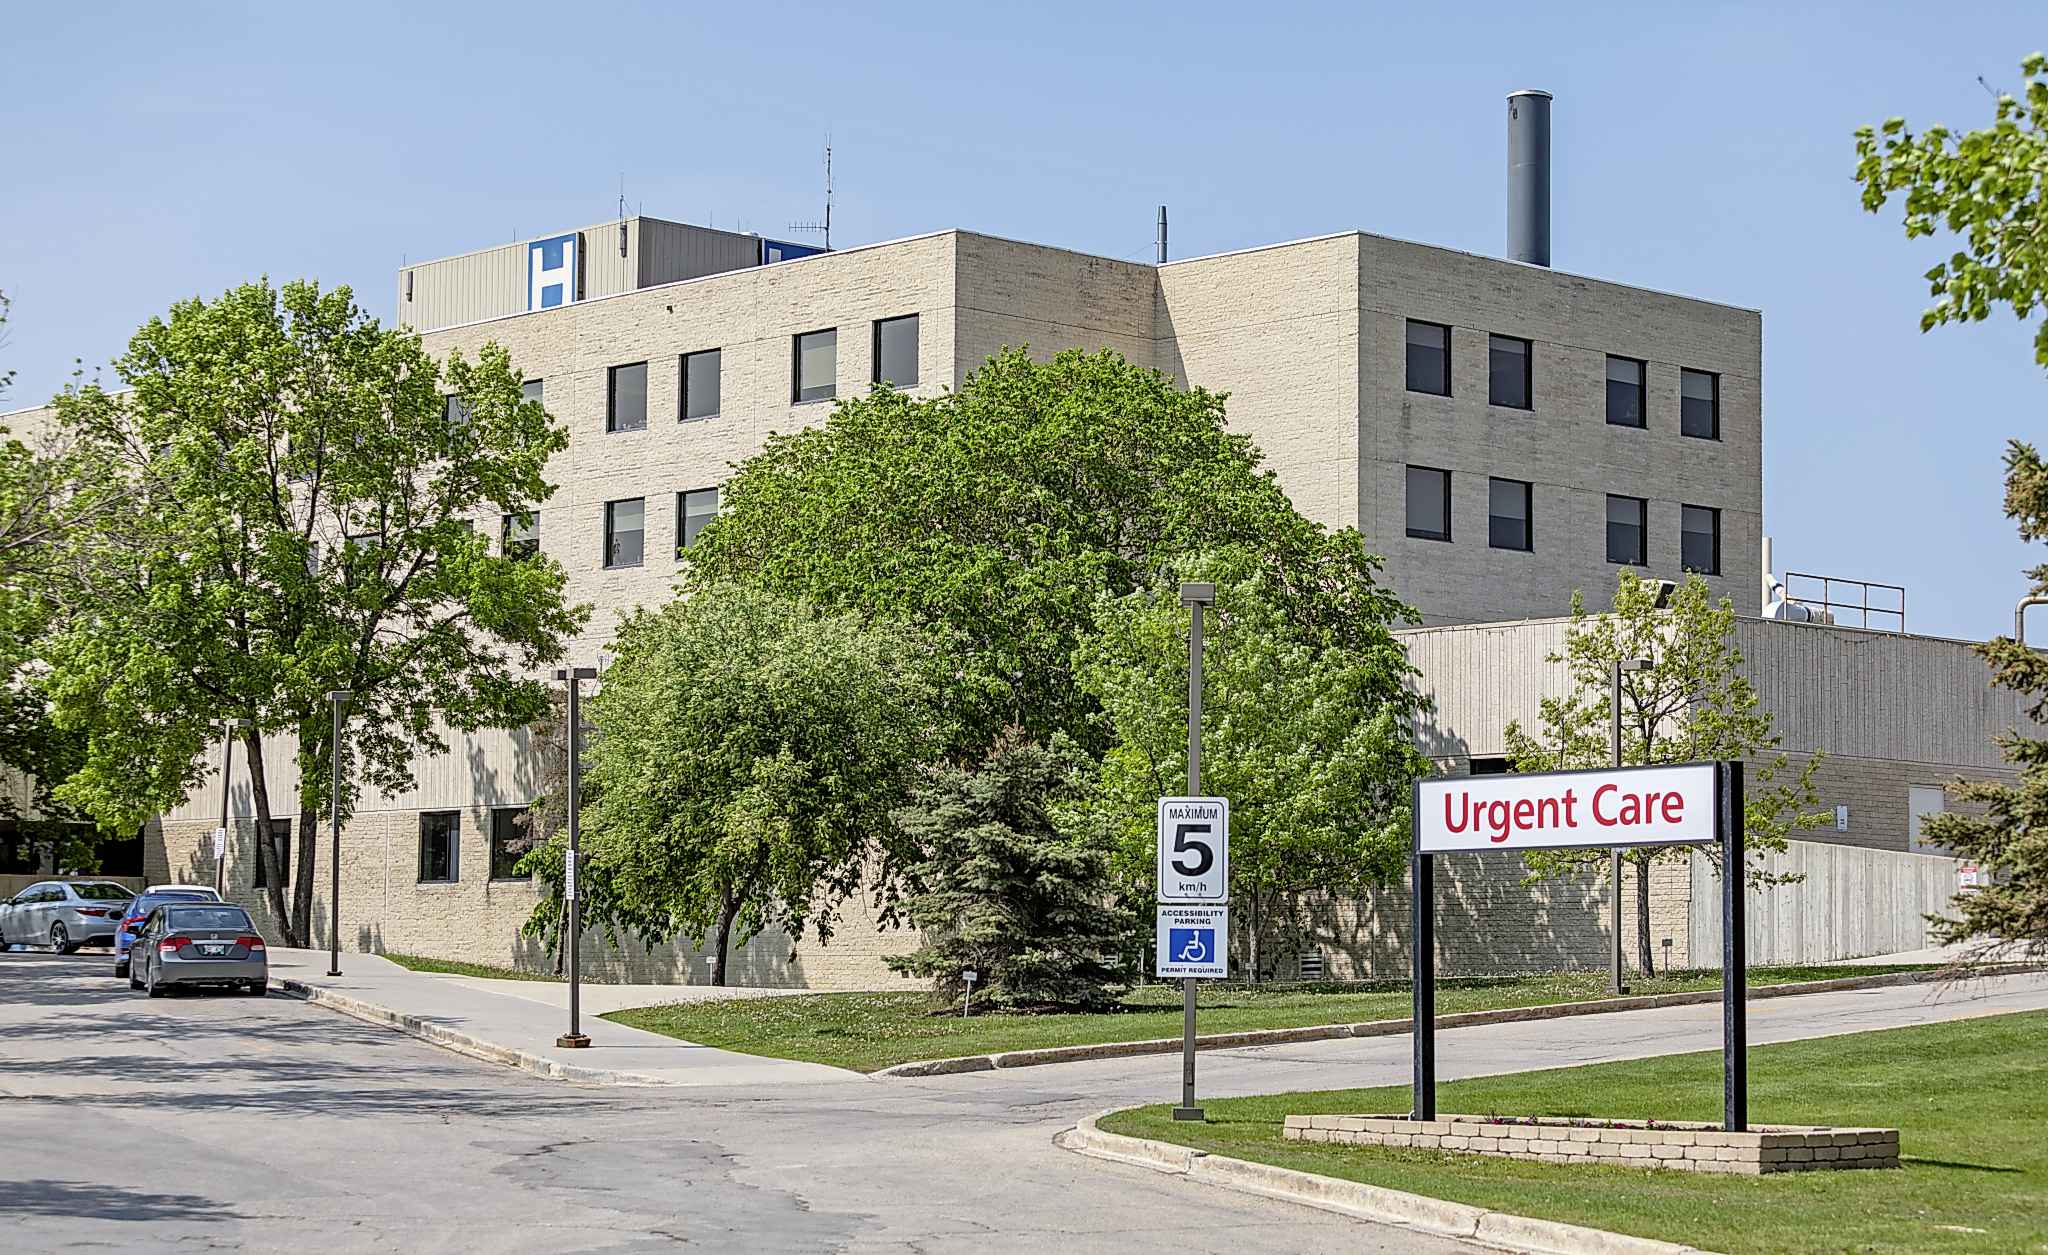 Officially beginning July 22, ambulances will transport low-acuity patients to one of three urgent care centres in the city: Victoria Hospital, Seven Oaks Hospital or Concordia Hospital (pictured).